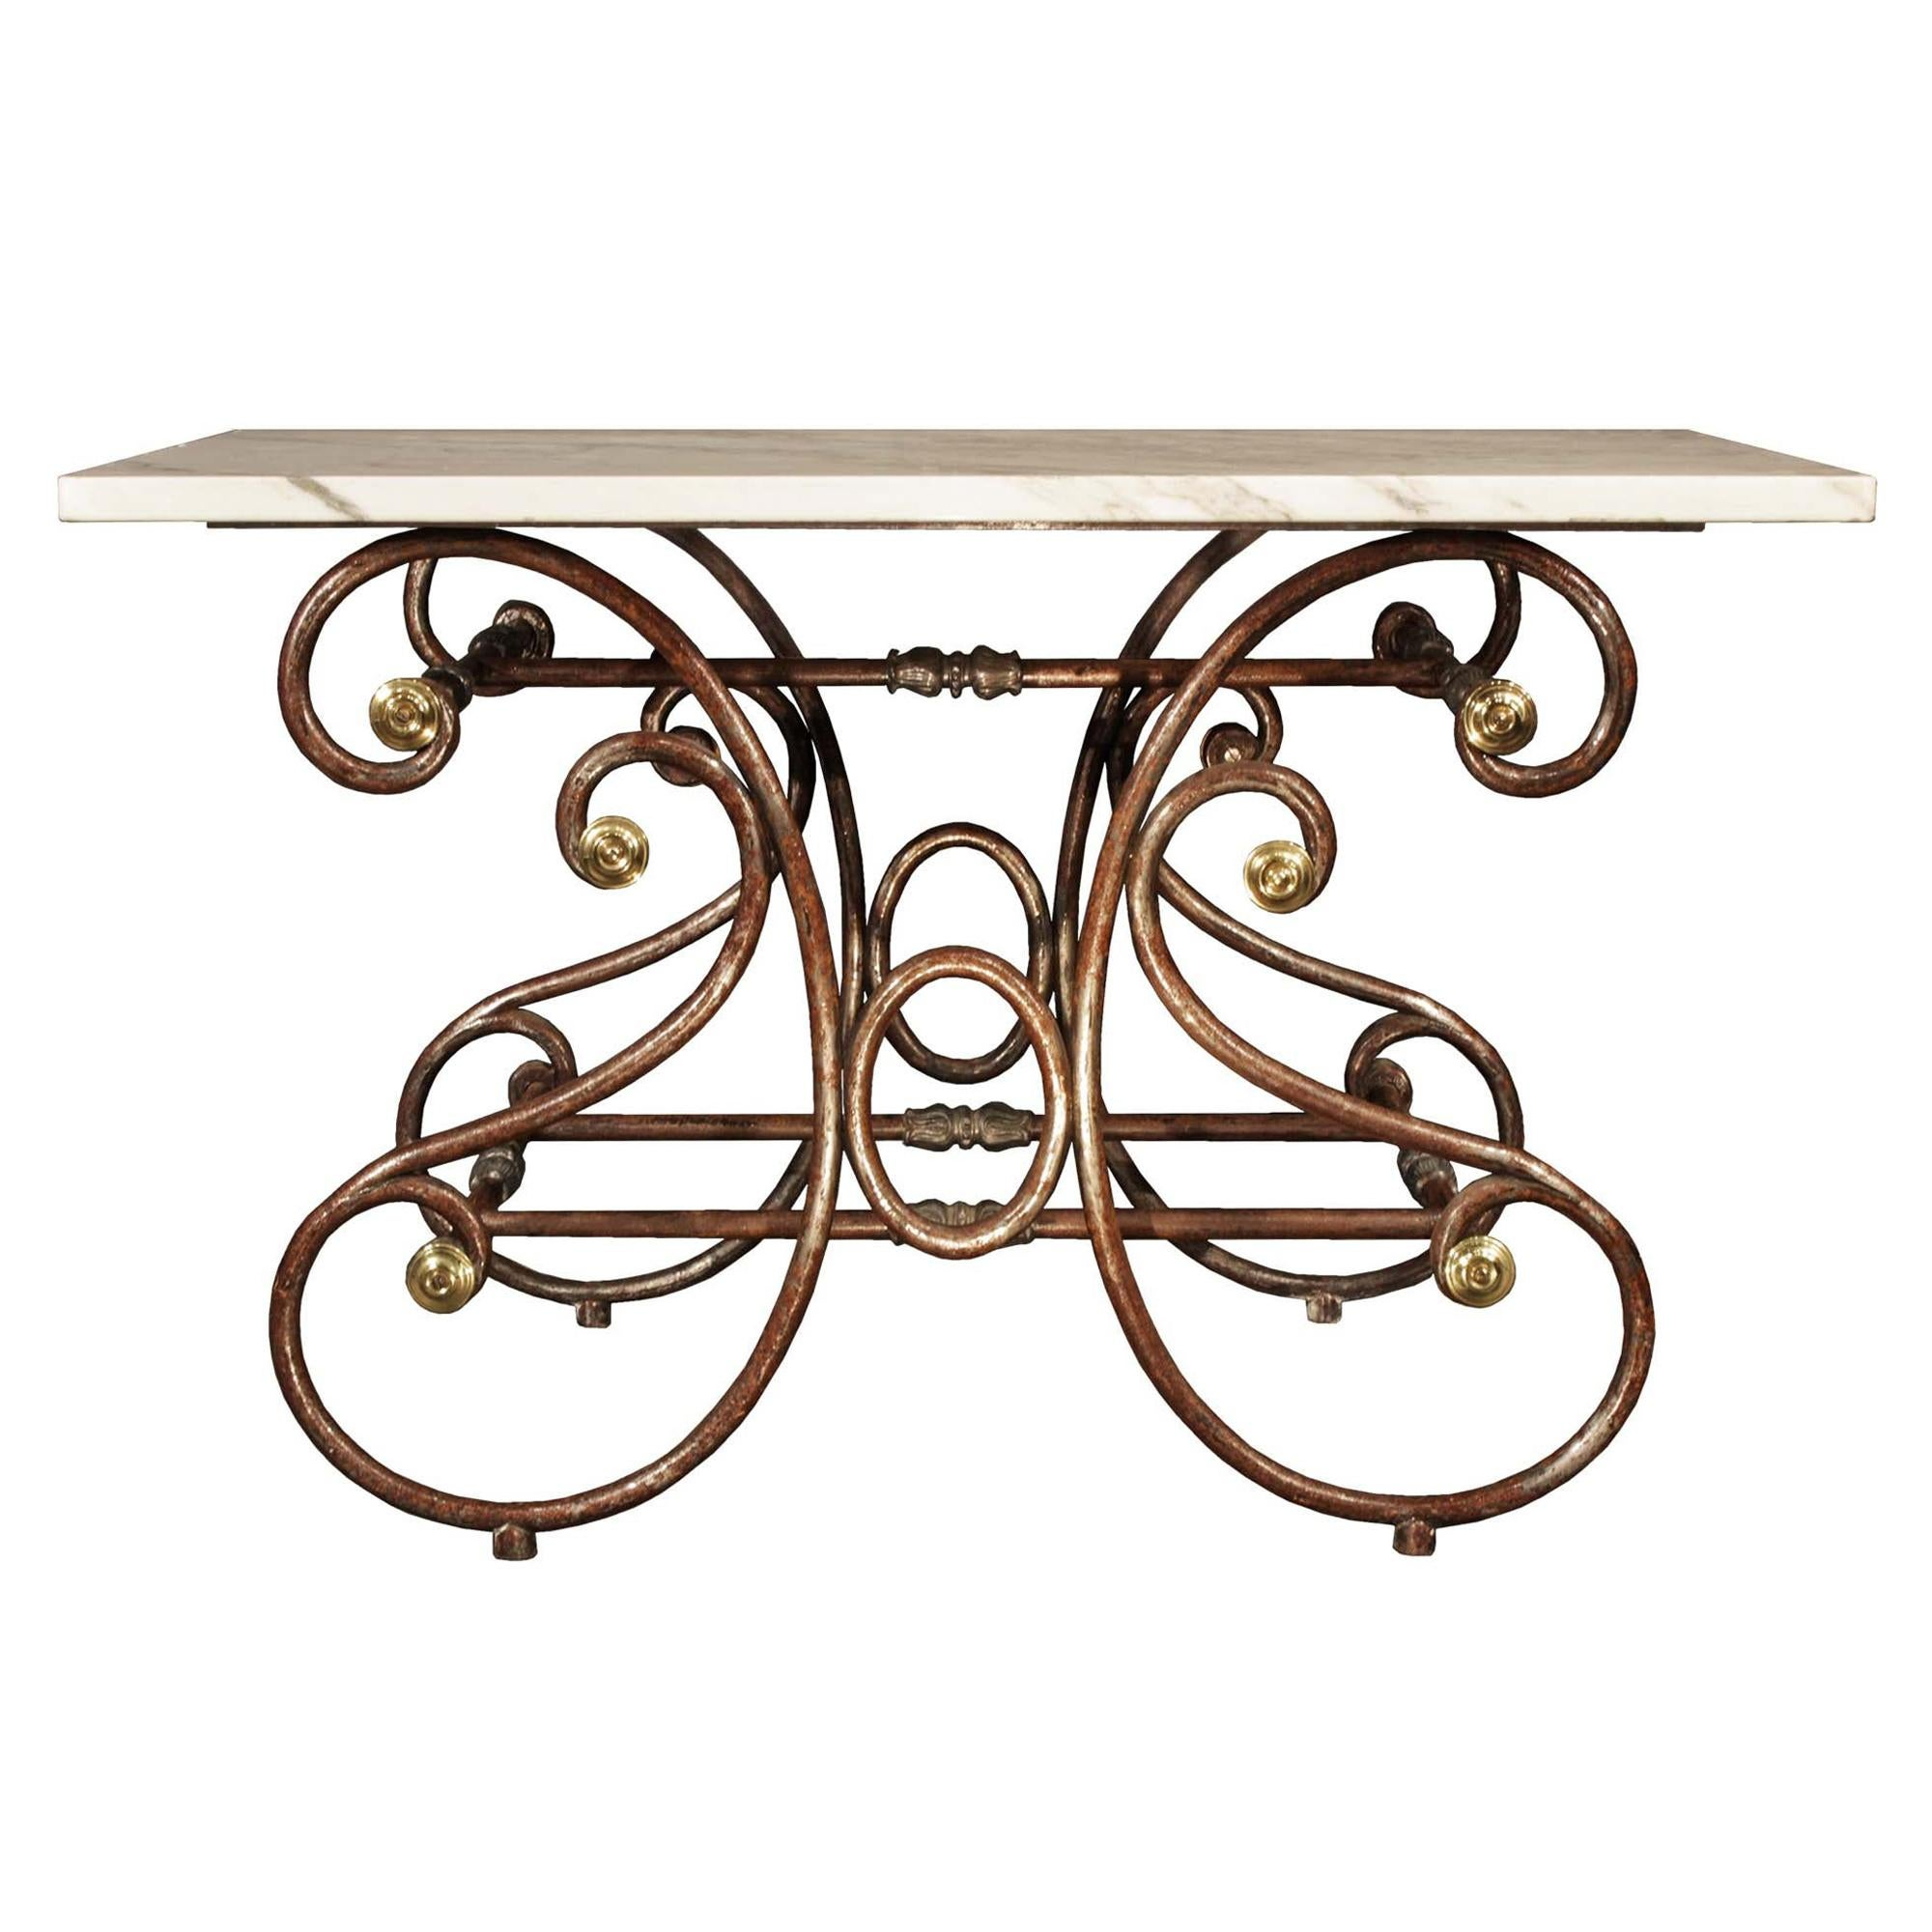 French 19th Century Wrought Iron and Marble Table de Boucher